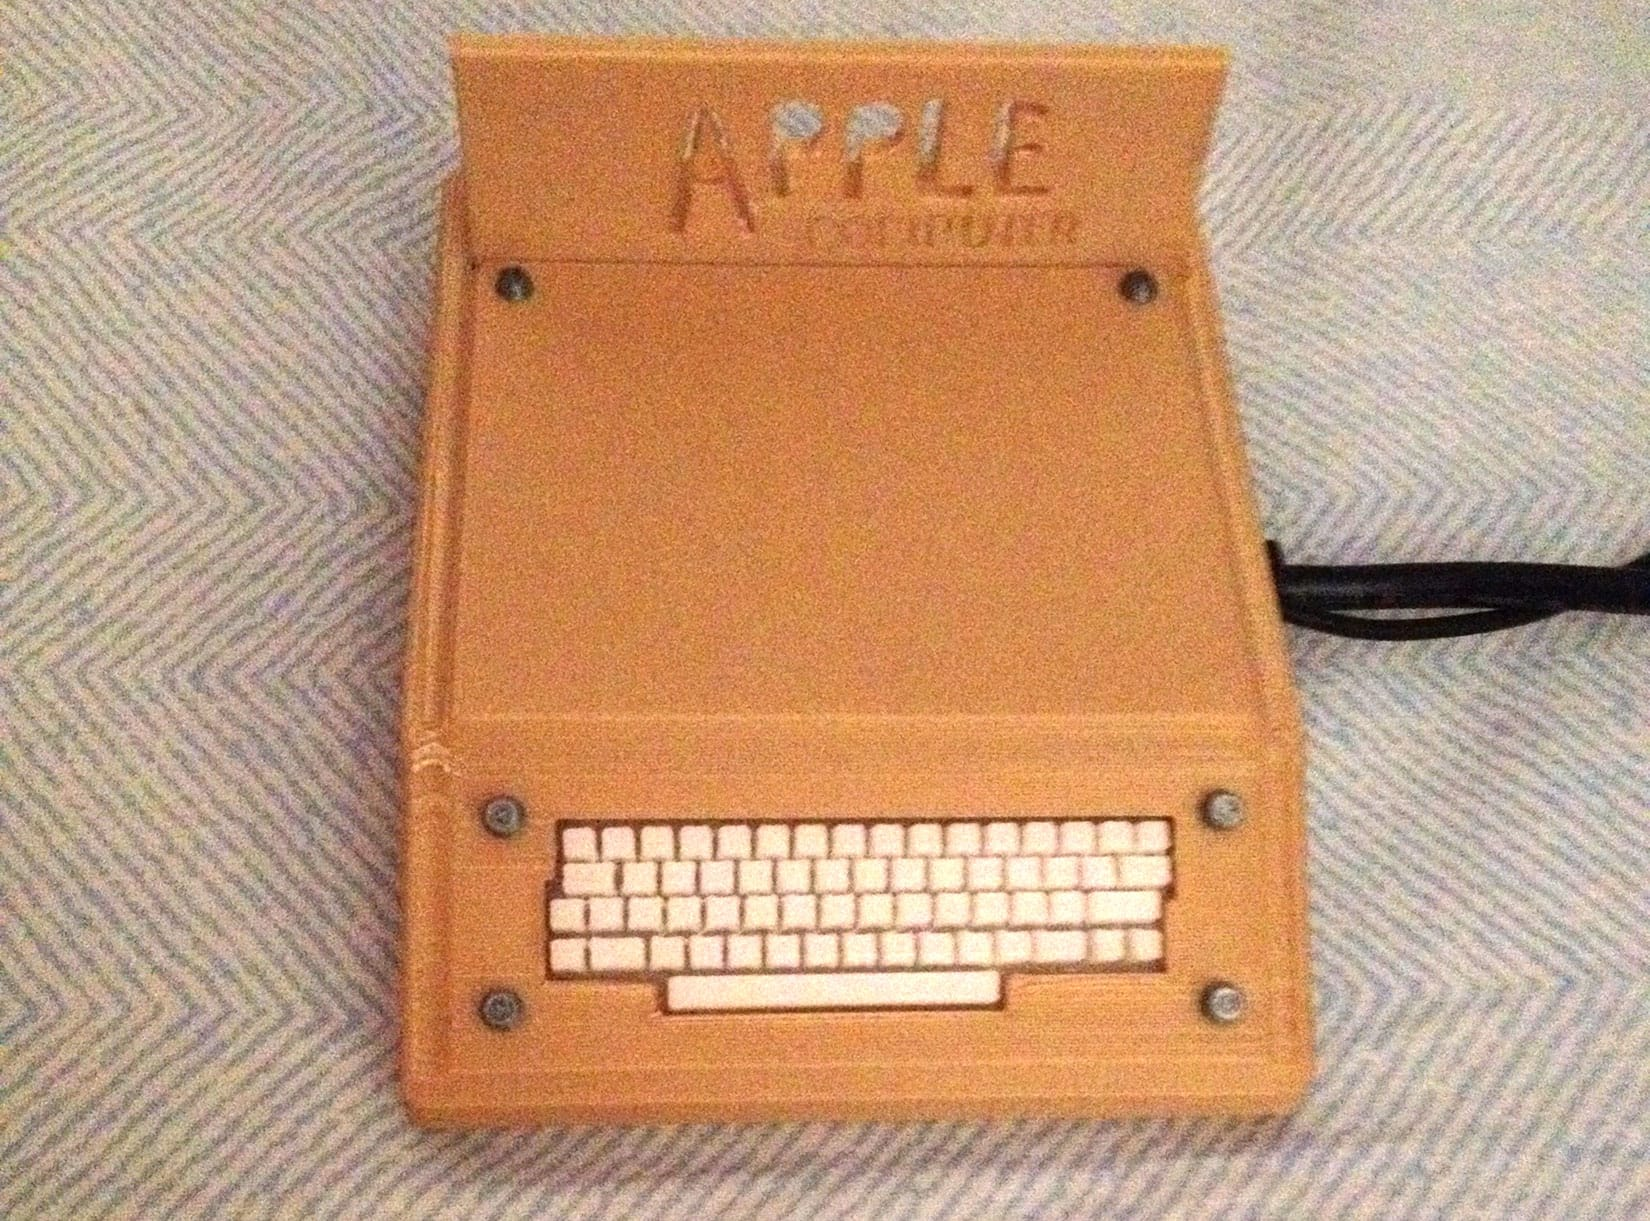 3d printed Smithsonian Apple 1